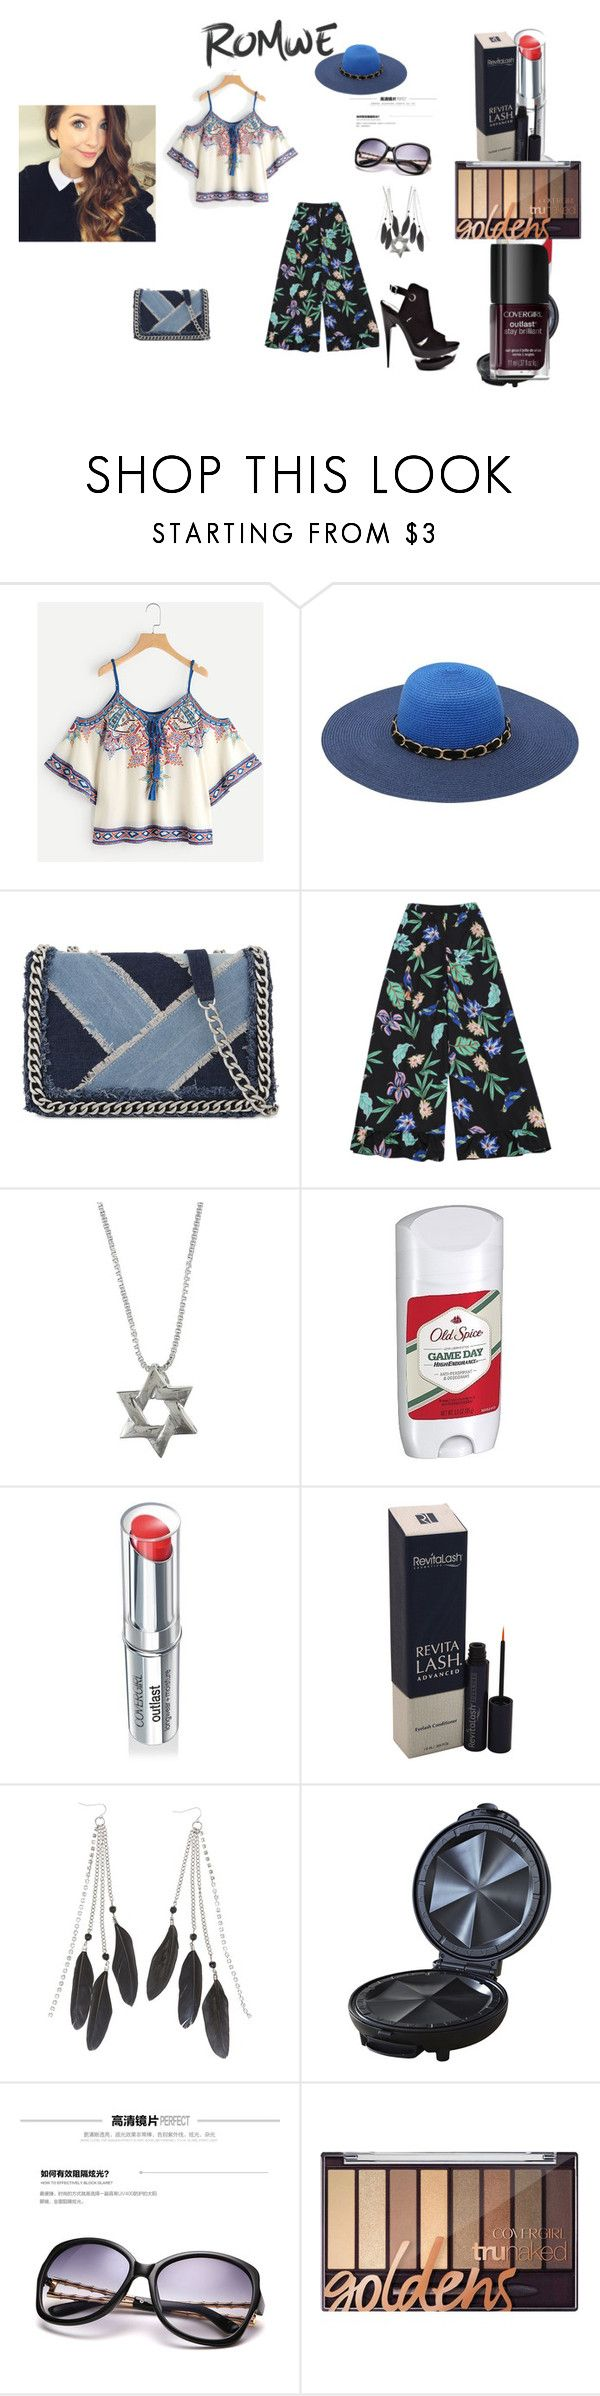 """Romwe win $30 coupon contest CLIX"" by naomig-dix ❤ liked on Polyvore featuring M&Co, ALDO, Old Spice, COVERGIRL, Charlotte Russe, Imusa, KOON and Nemesis"